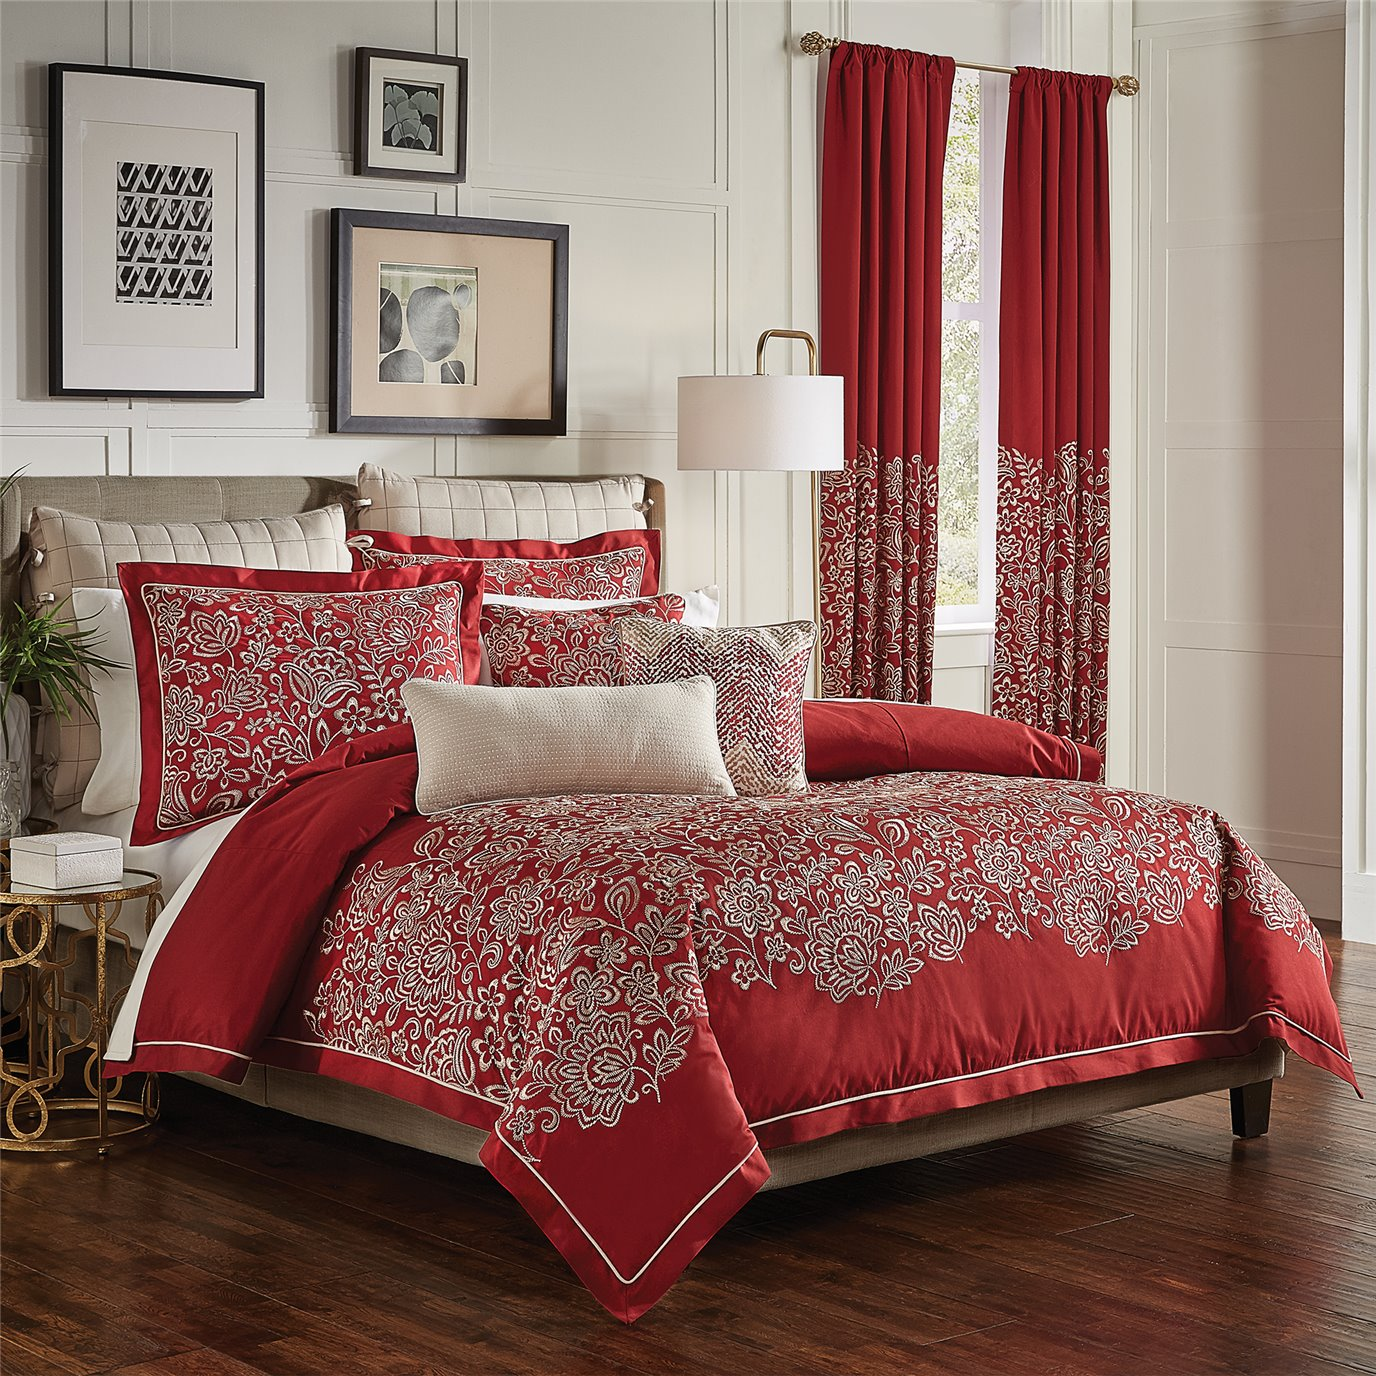 Adriel Queen 3 Piece Comforter set